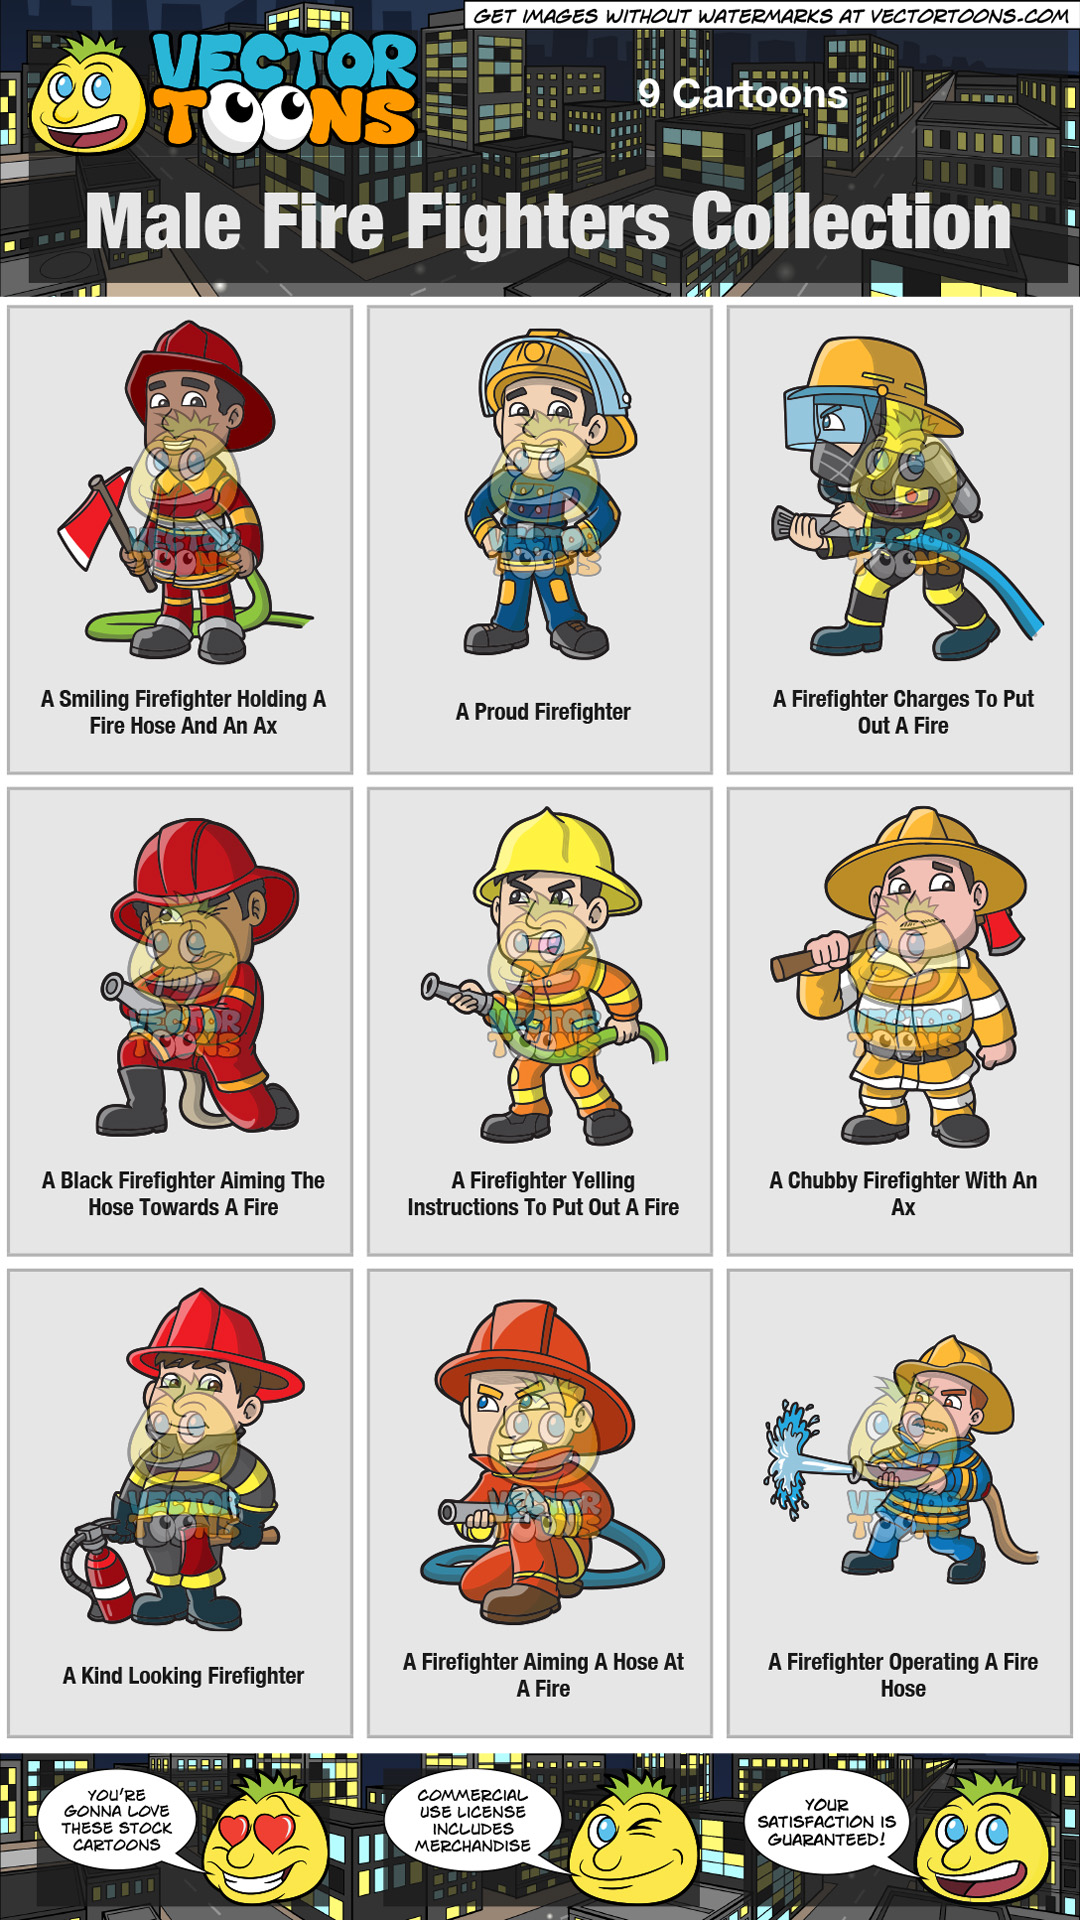 Male Fire Fighters Collection thumbnail